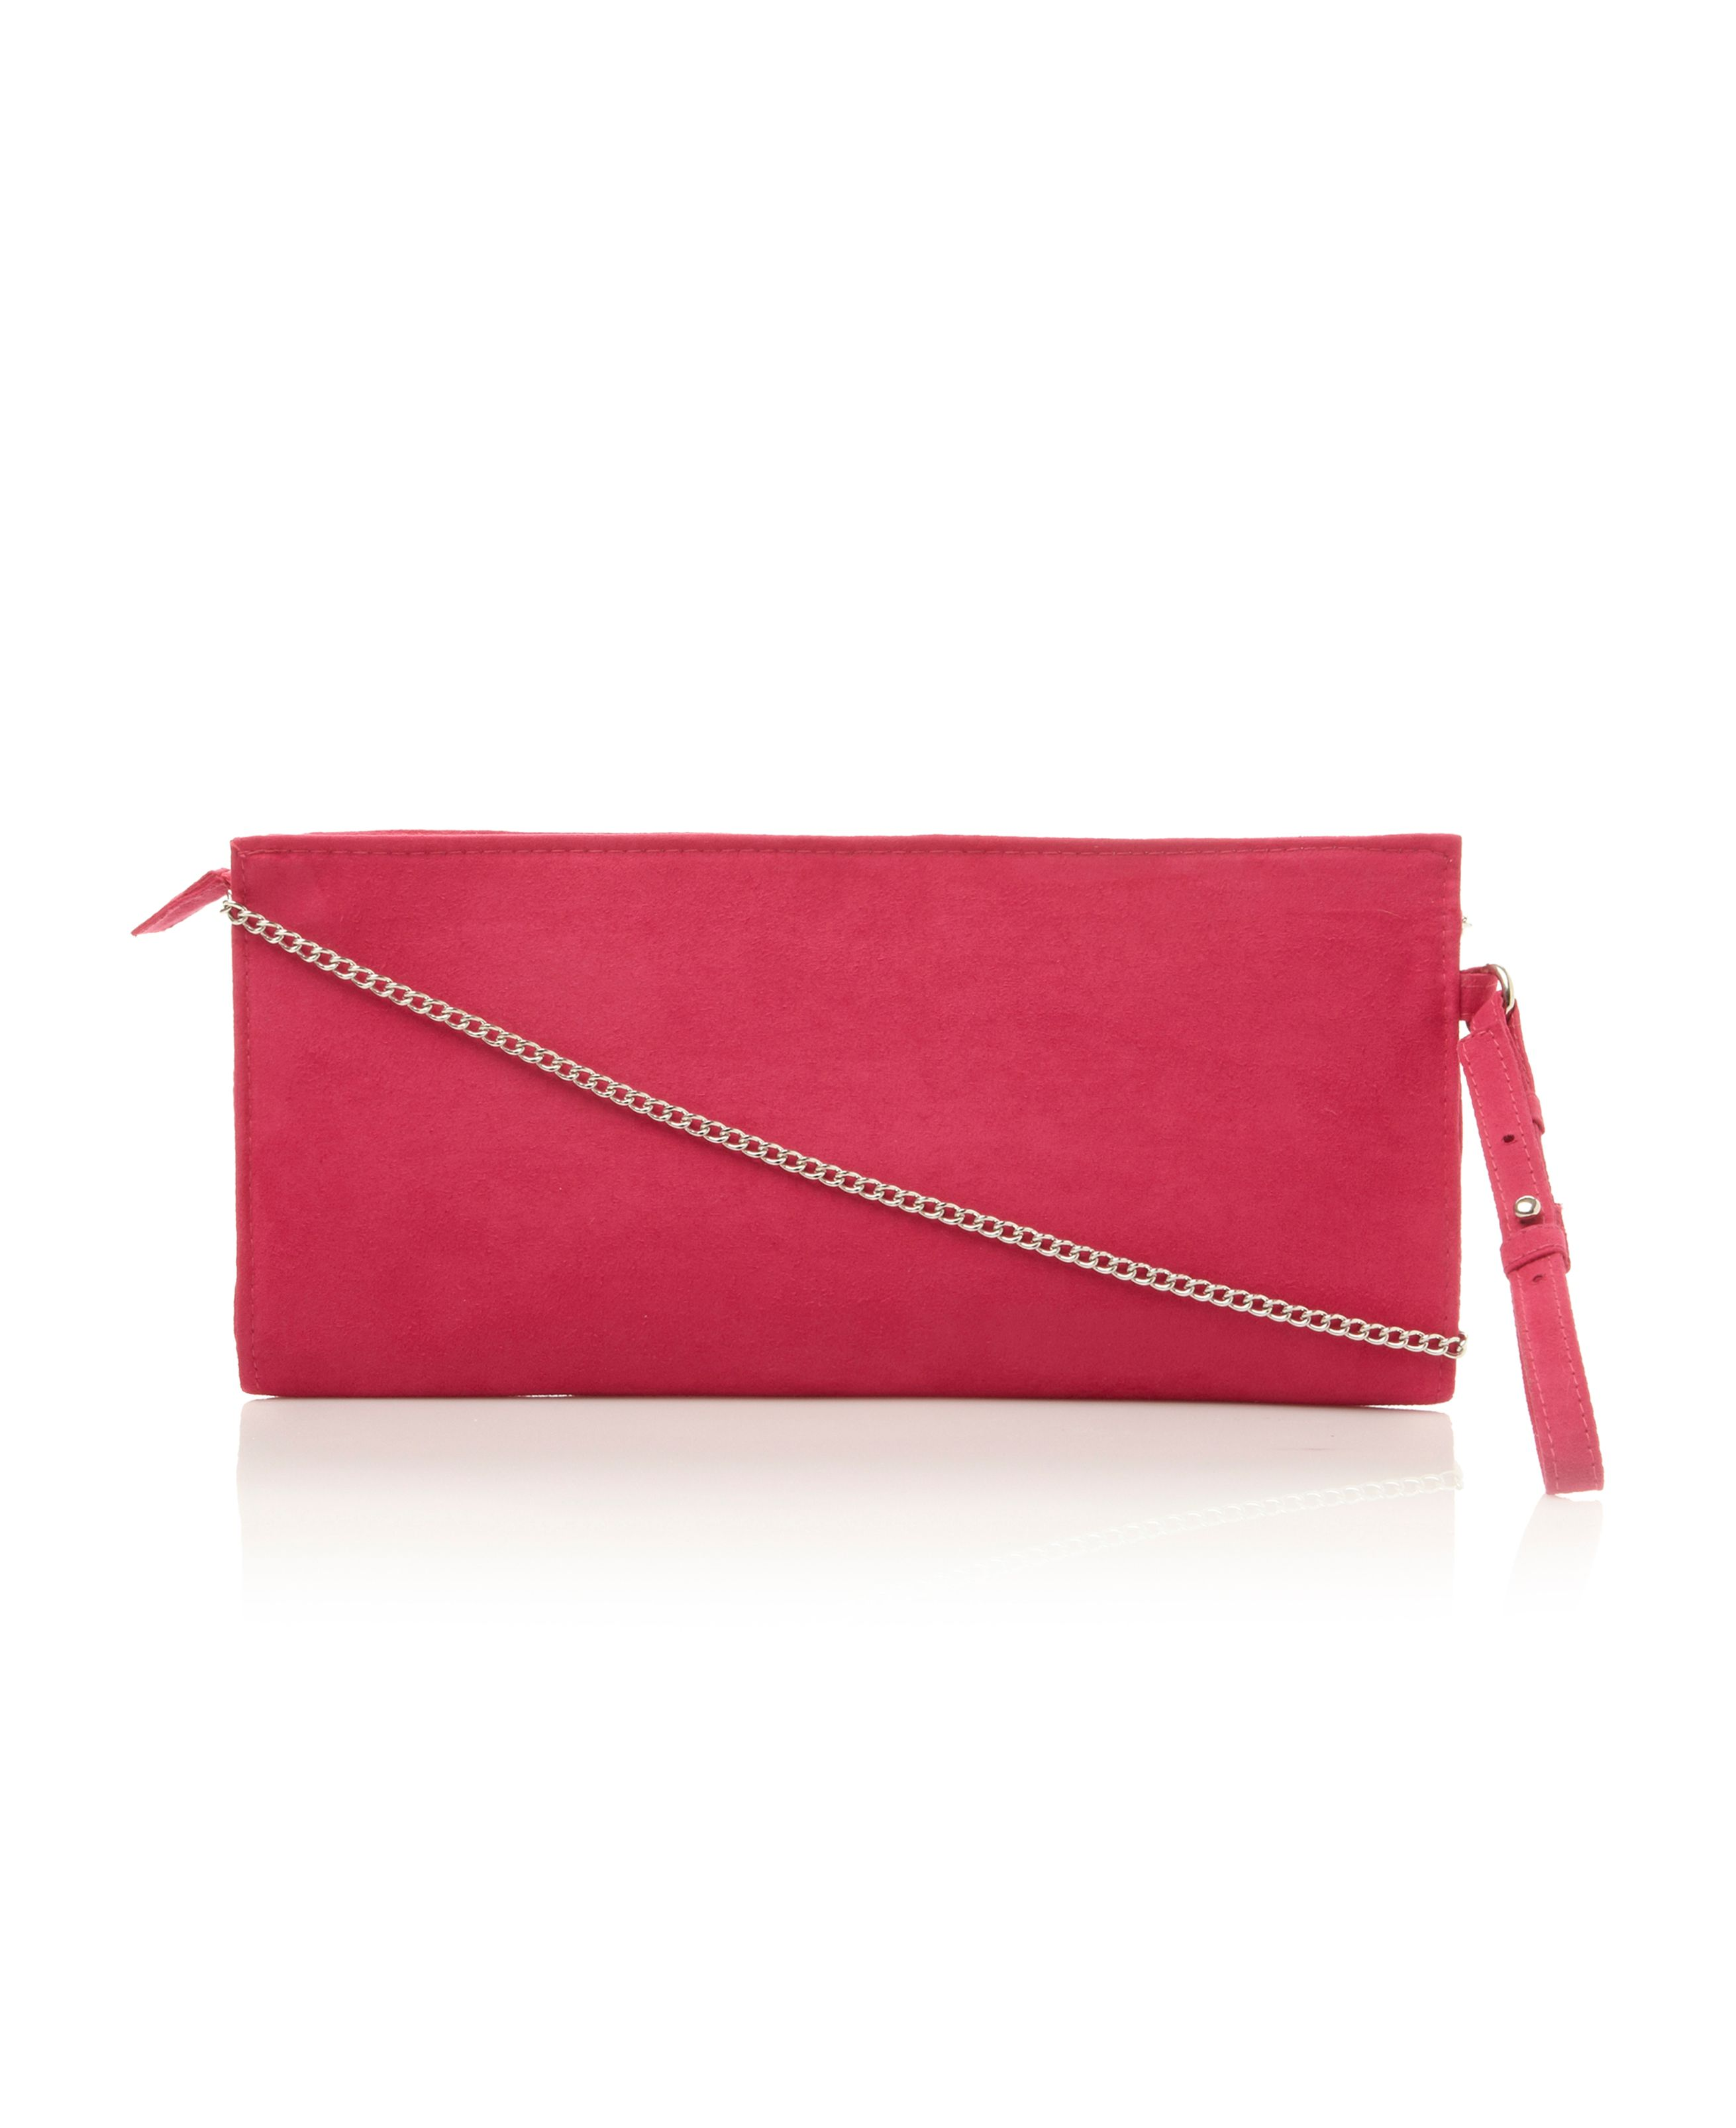 Bandle suedette clutch bag